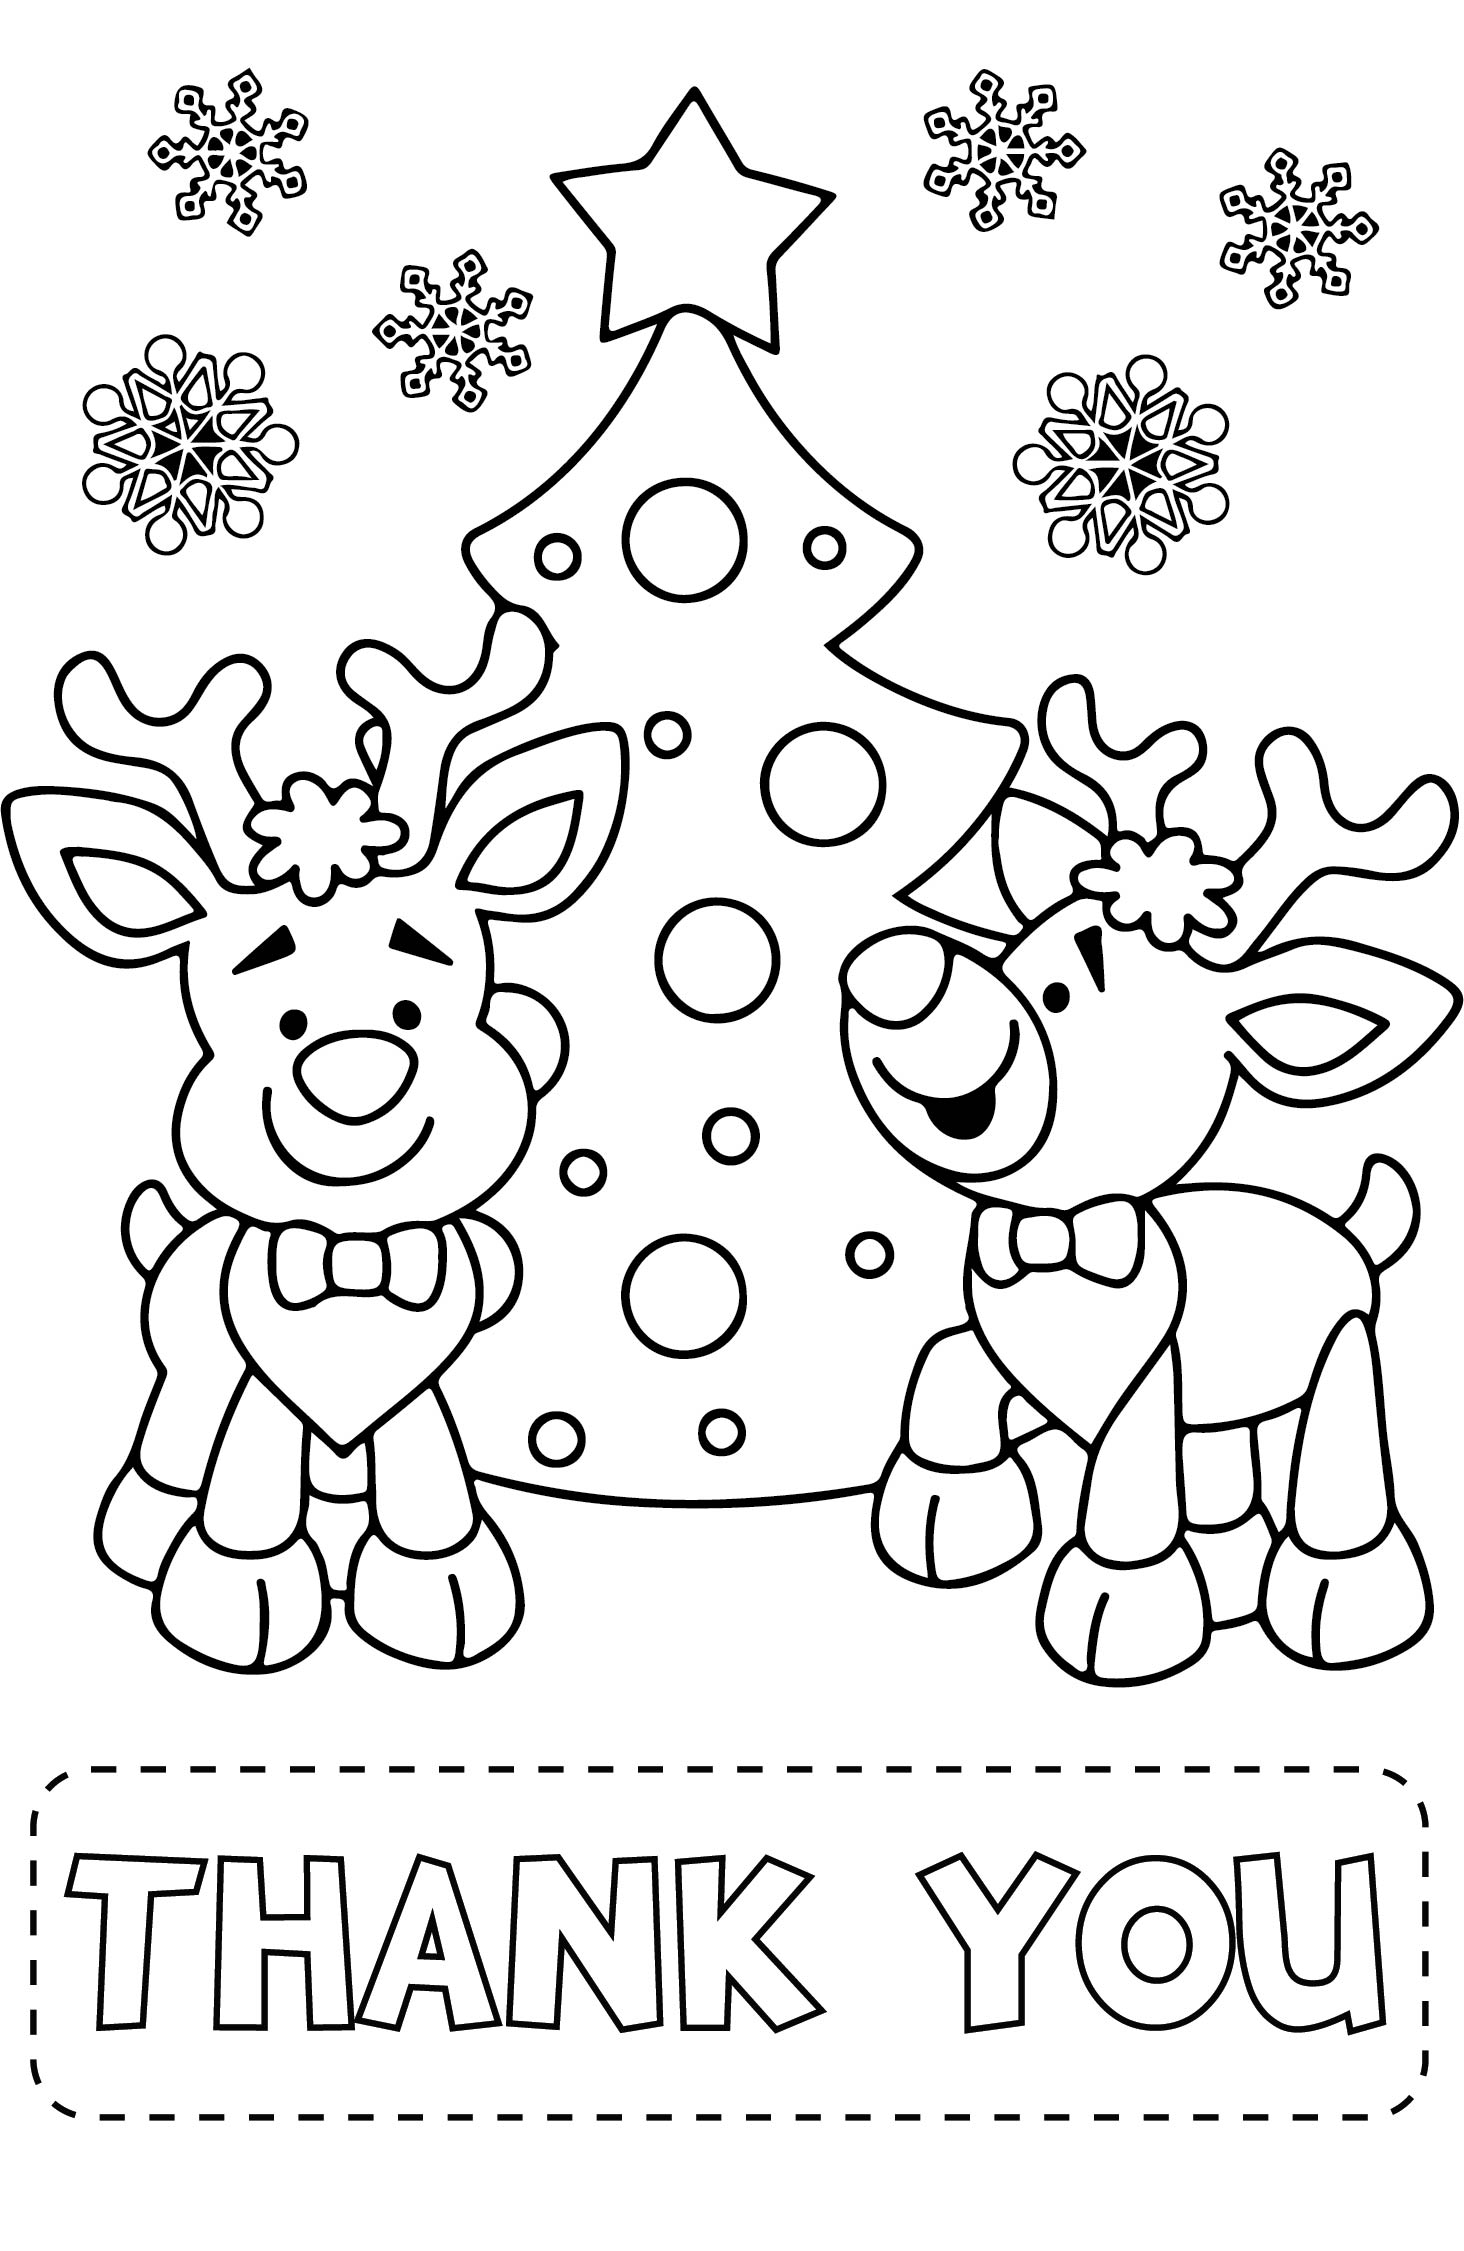 9 Images of Christmas Printable Coloring Thank You Cards